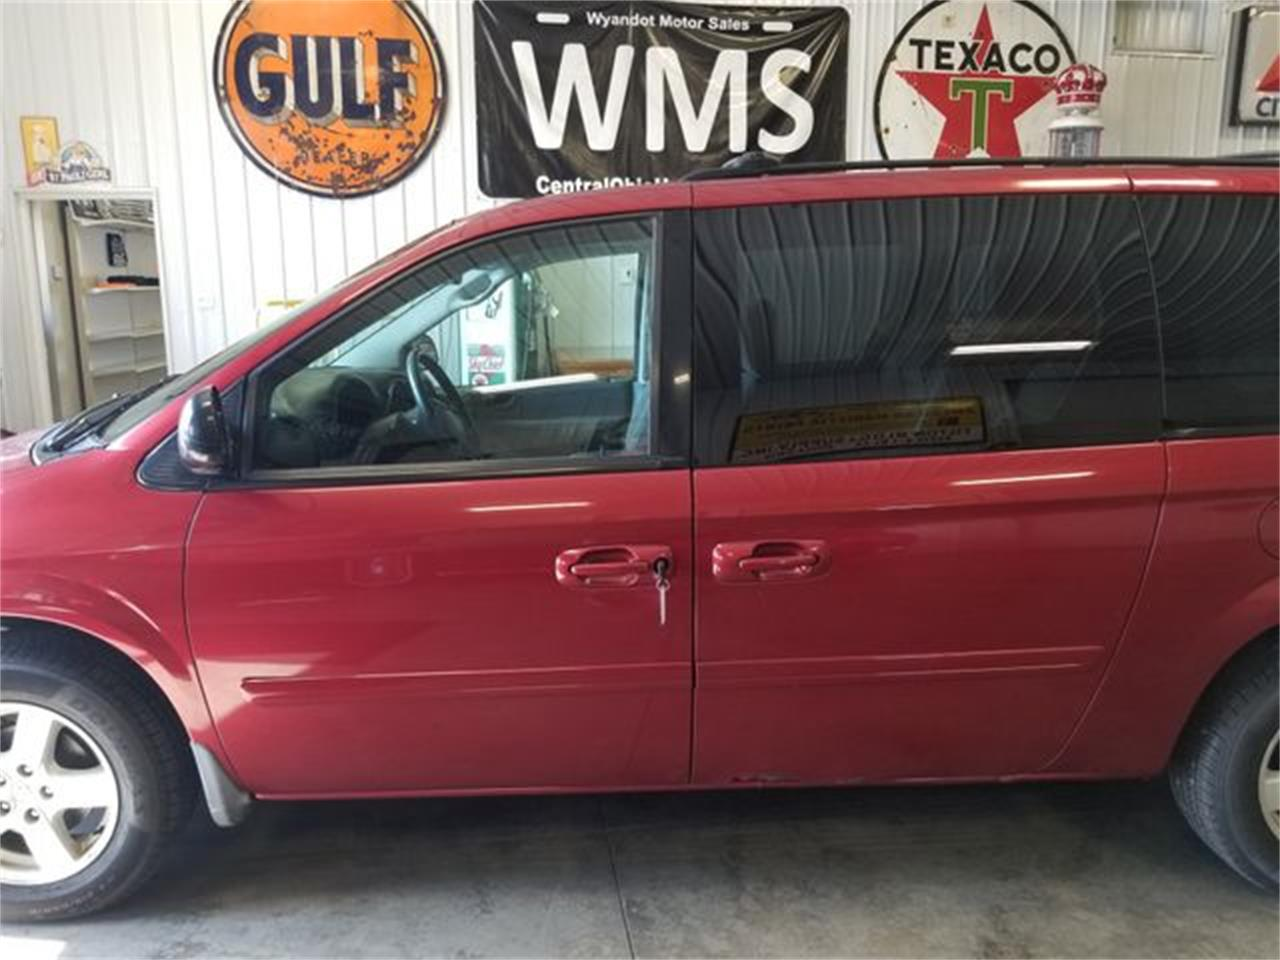 2006 Dodge Grand Caravan (CC-1236653) for sale in Upper Sandusky, Ohio